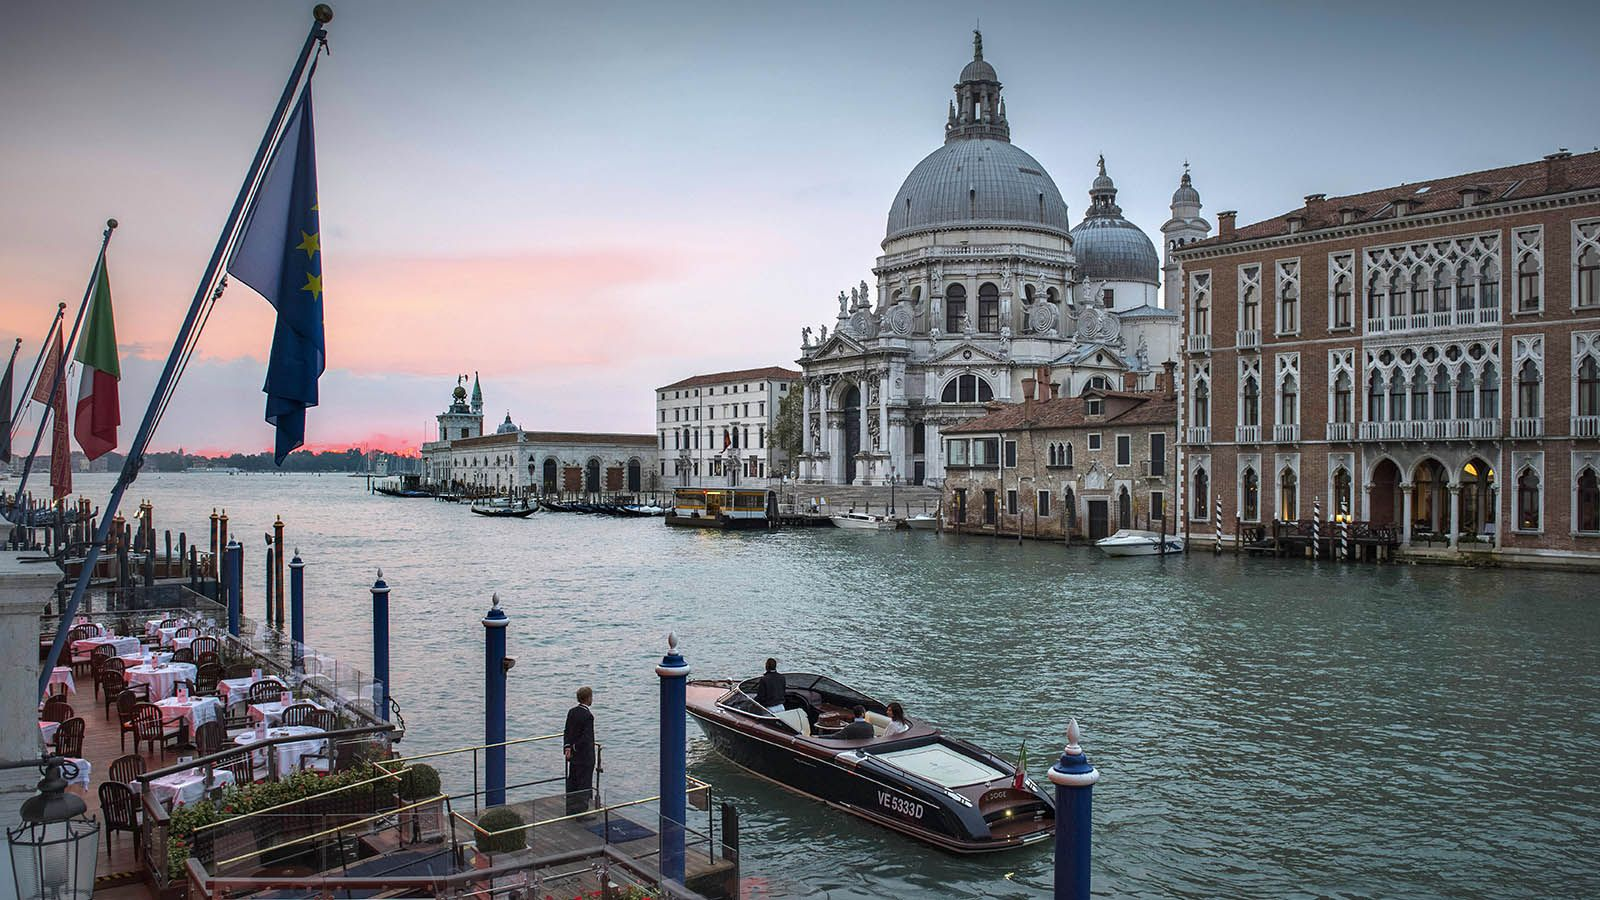 Santa Maria della Salute and the Riva boat